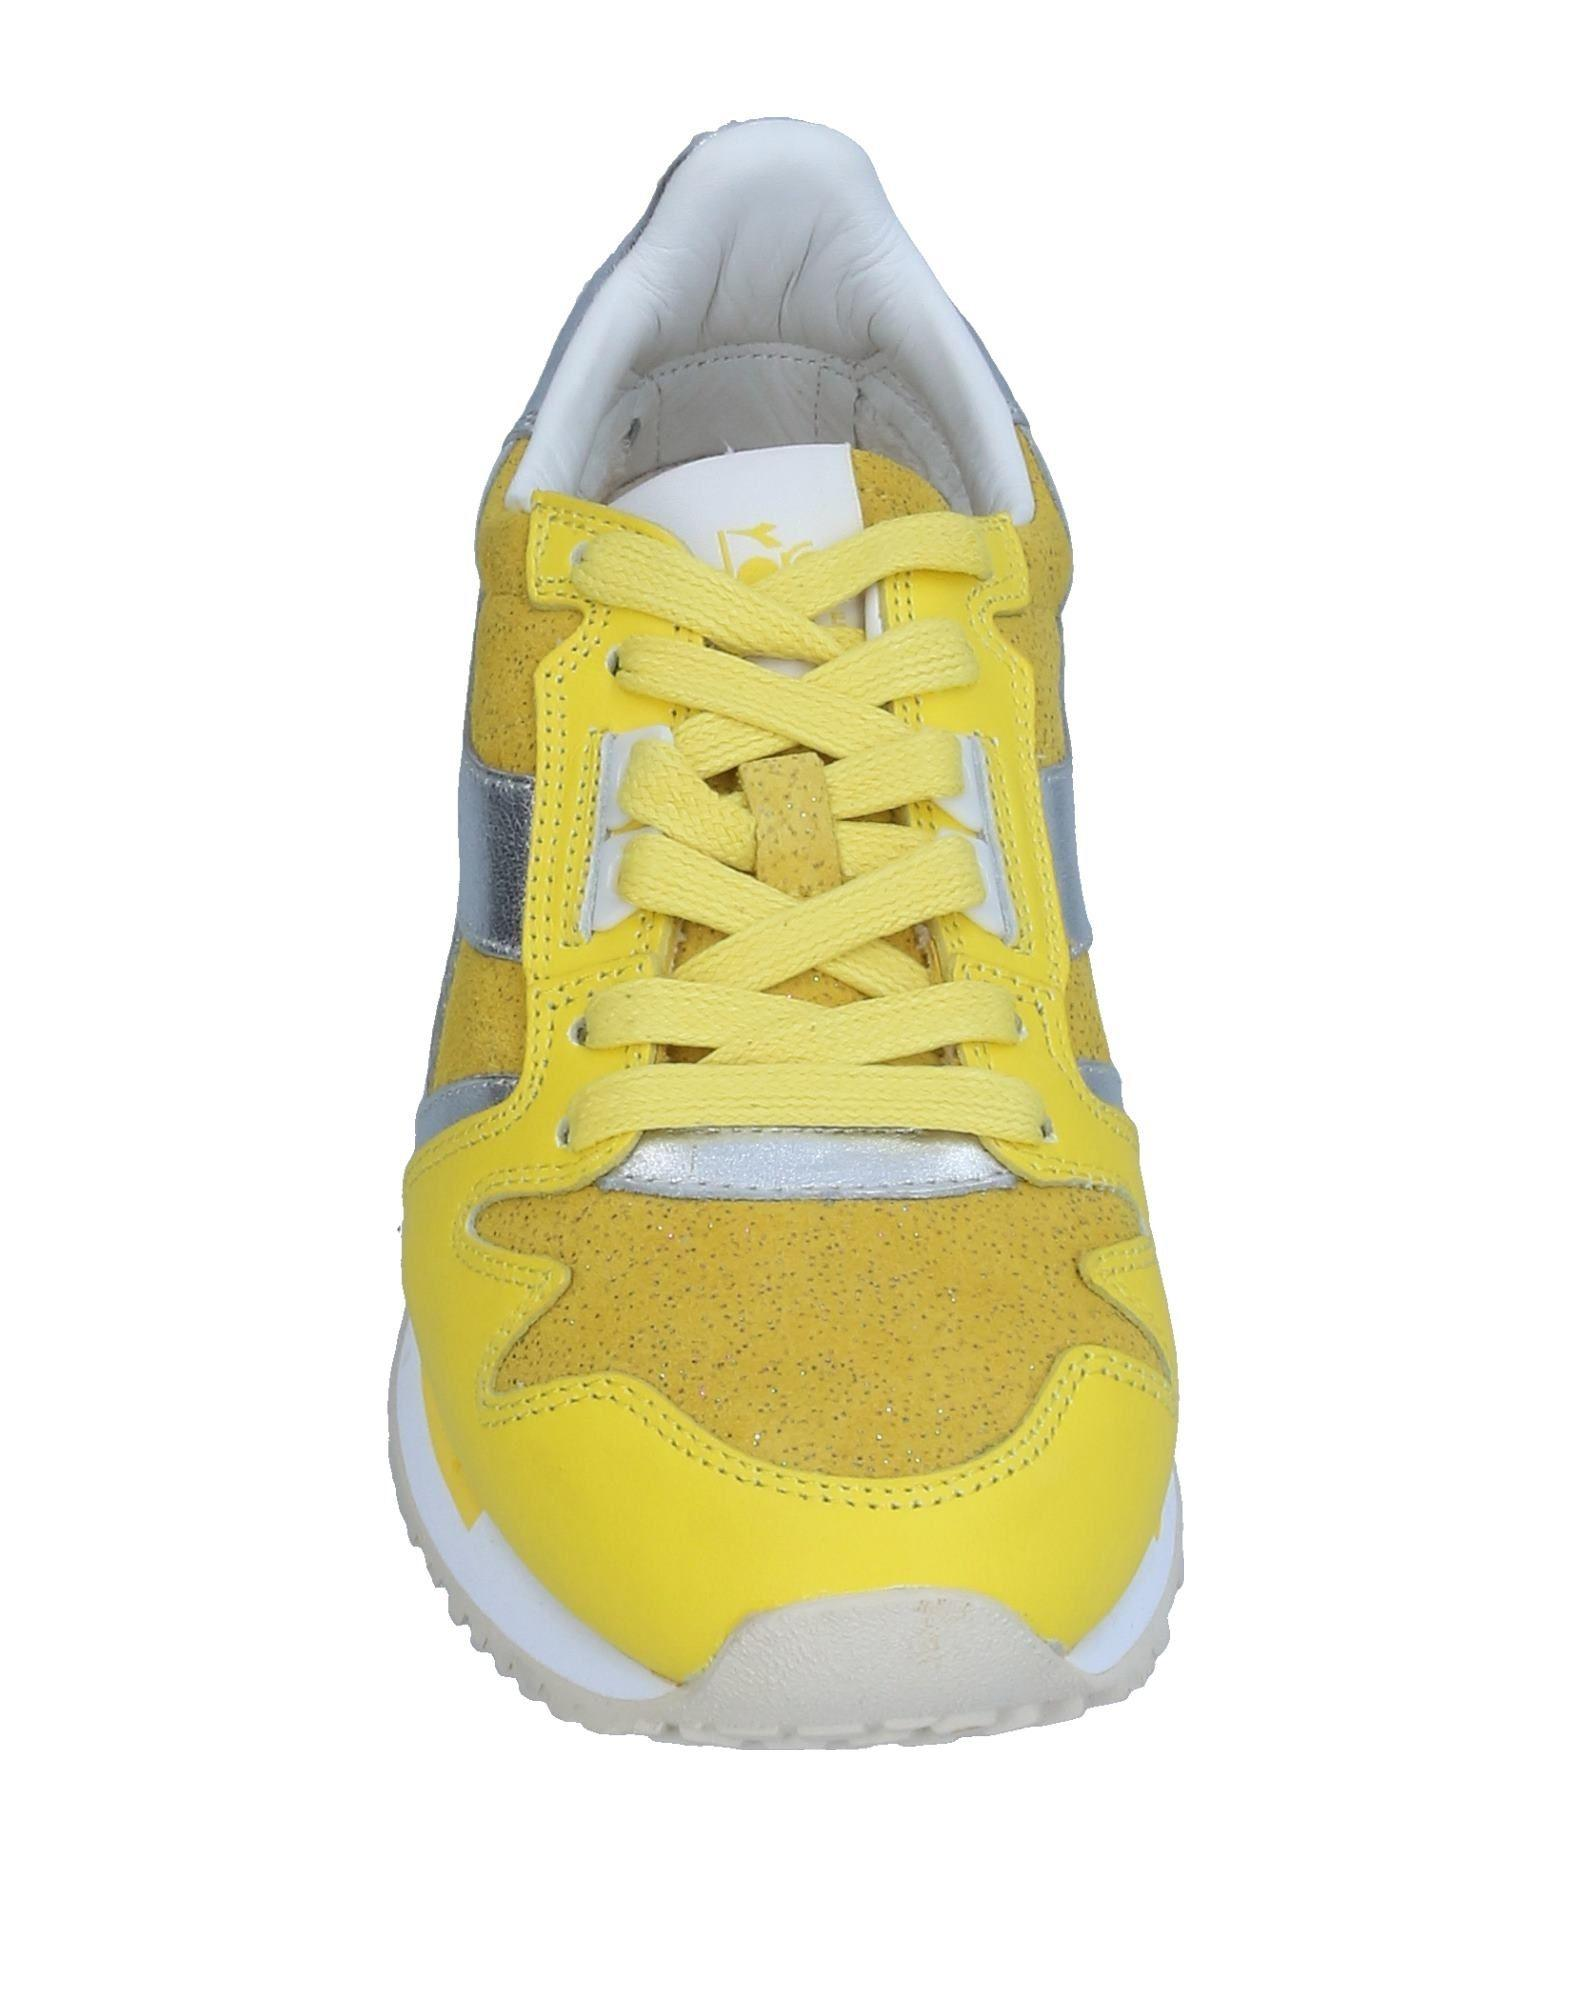 Diadora Leather Low-tops & Sneakers in Yellow